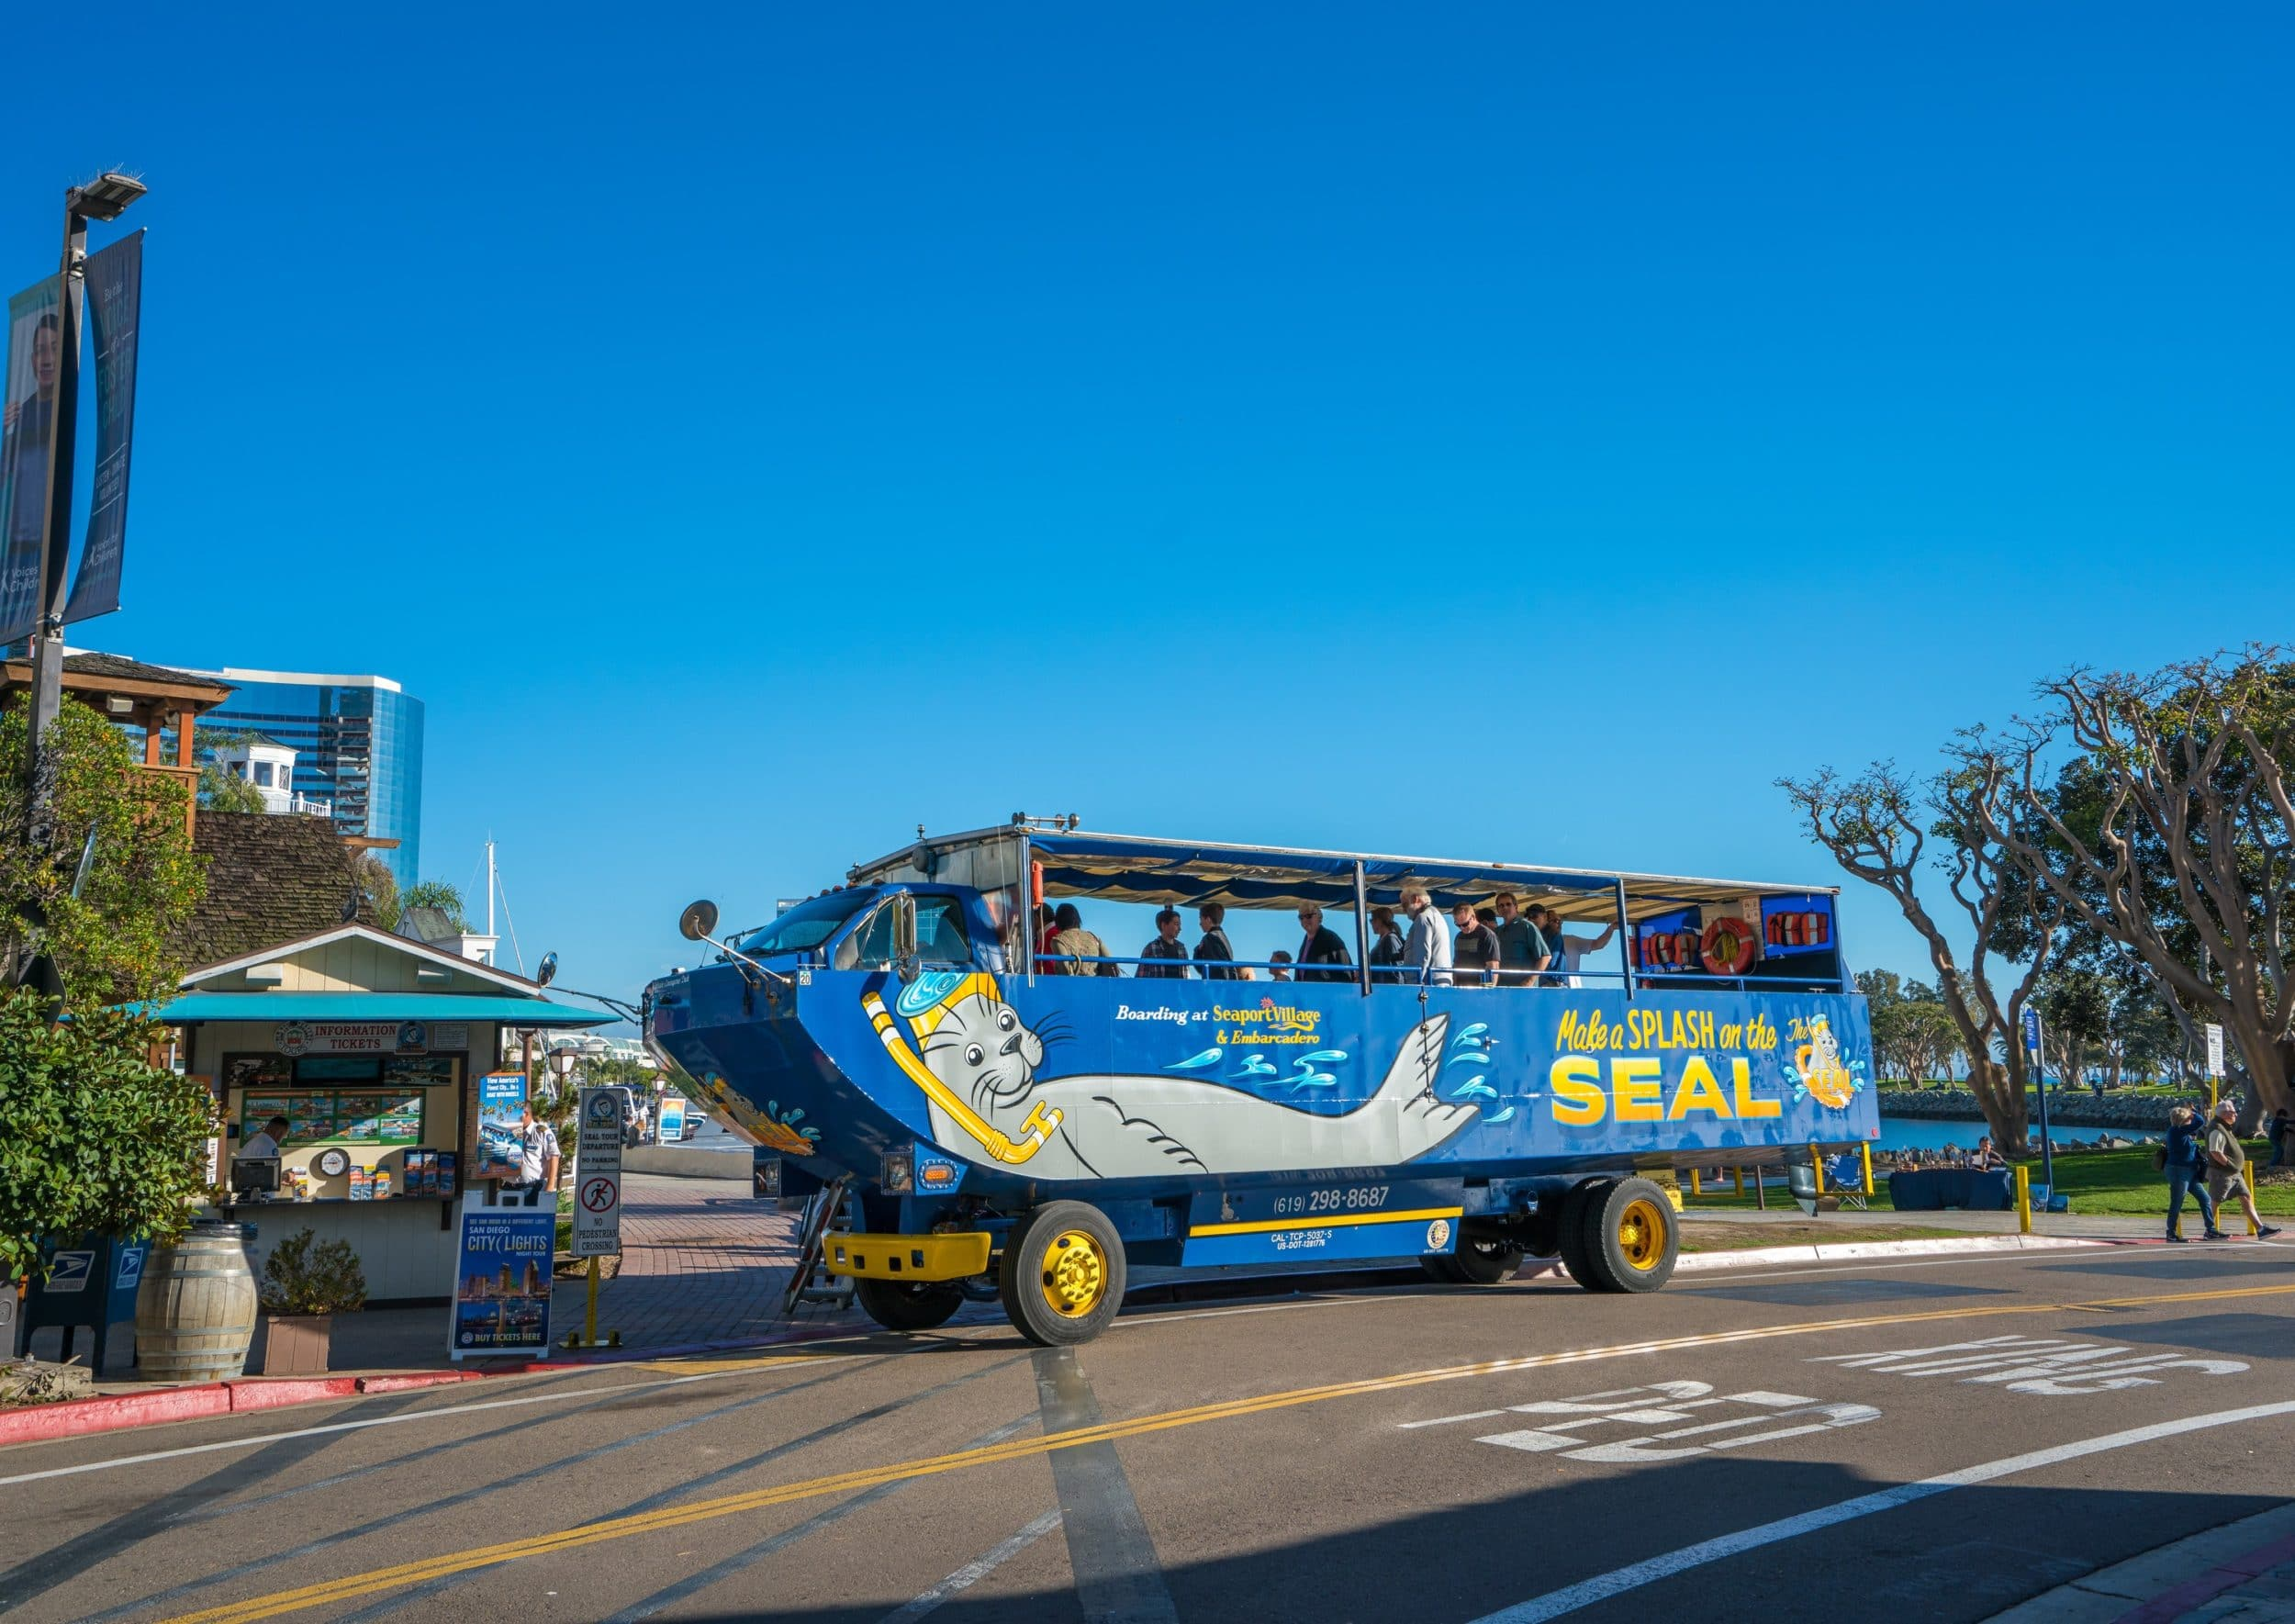 San Diego Seal Tours are one of the best things to do in San Diego with kids.